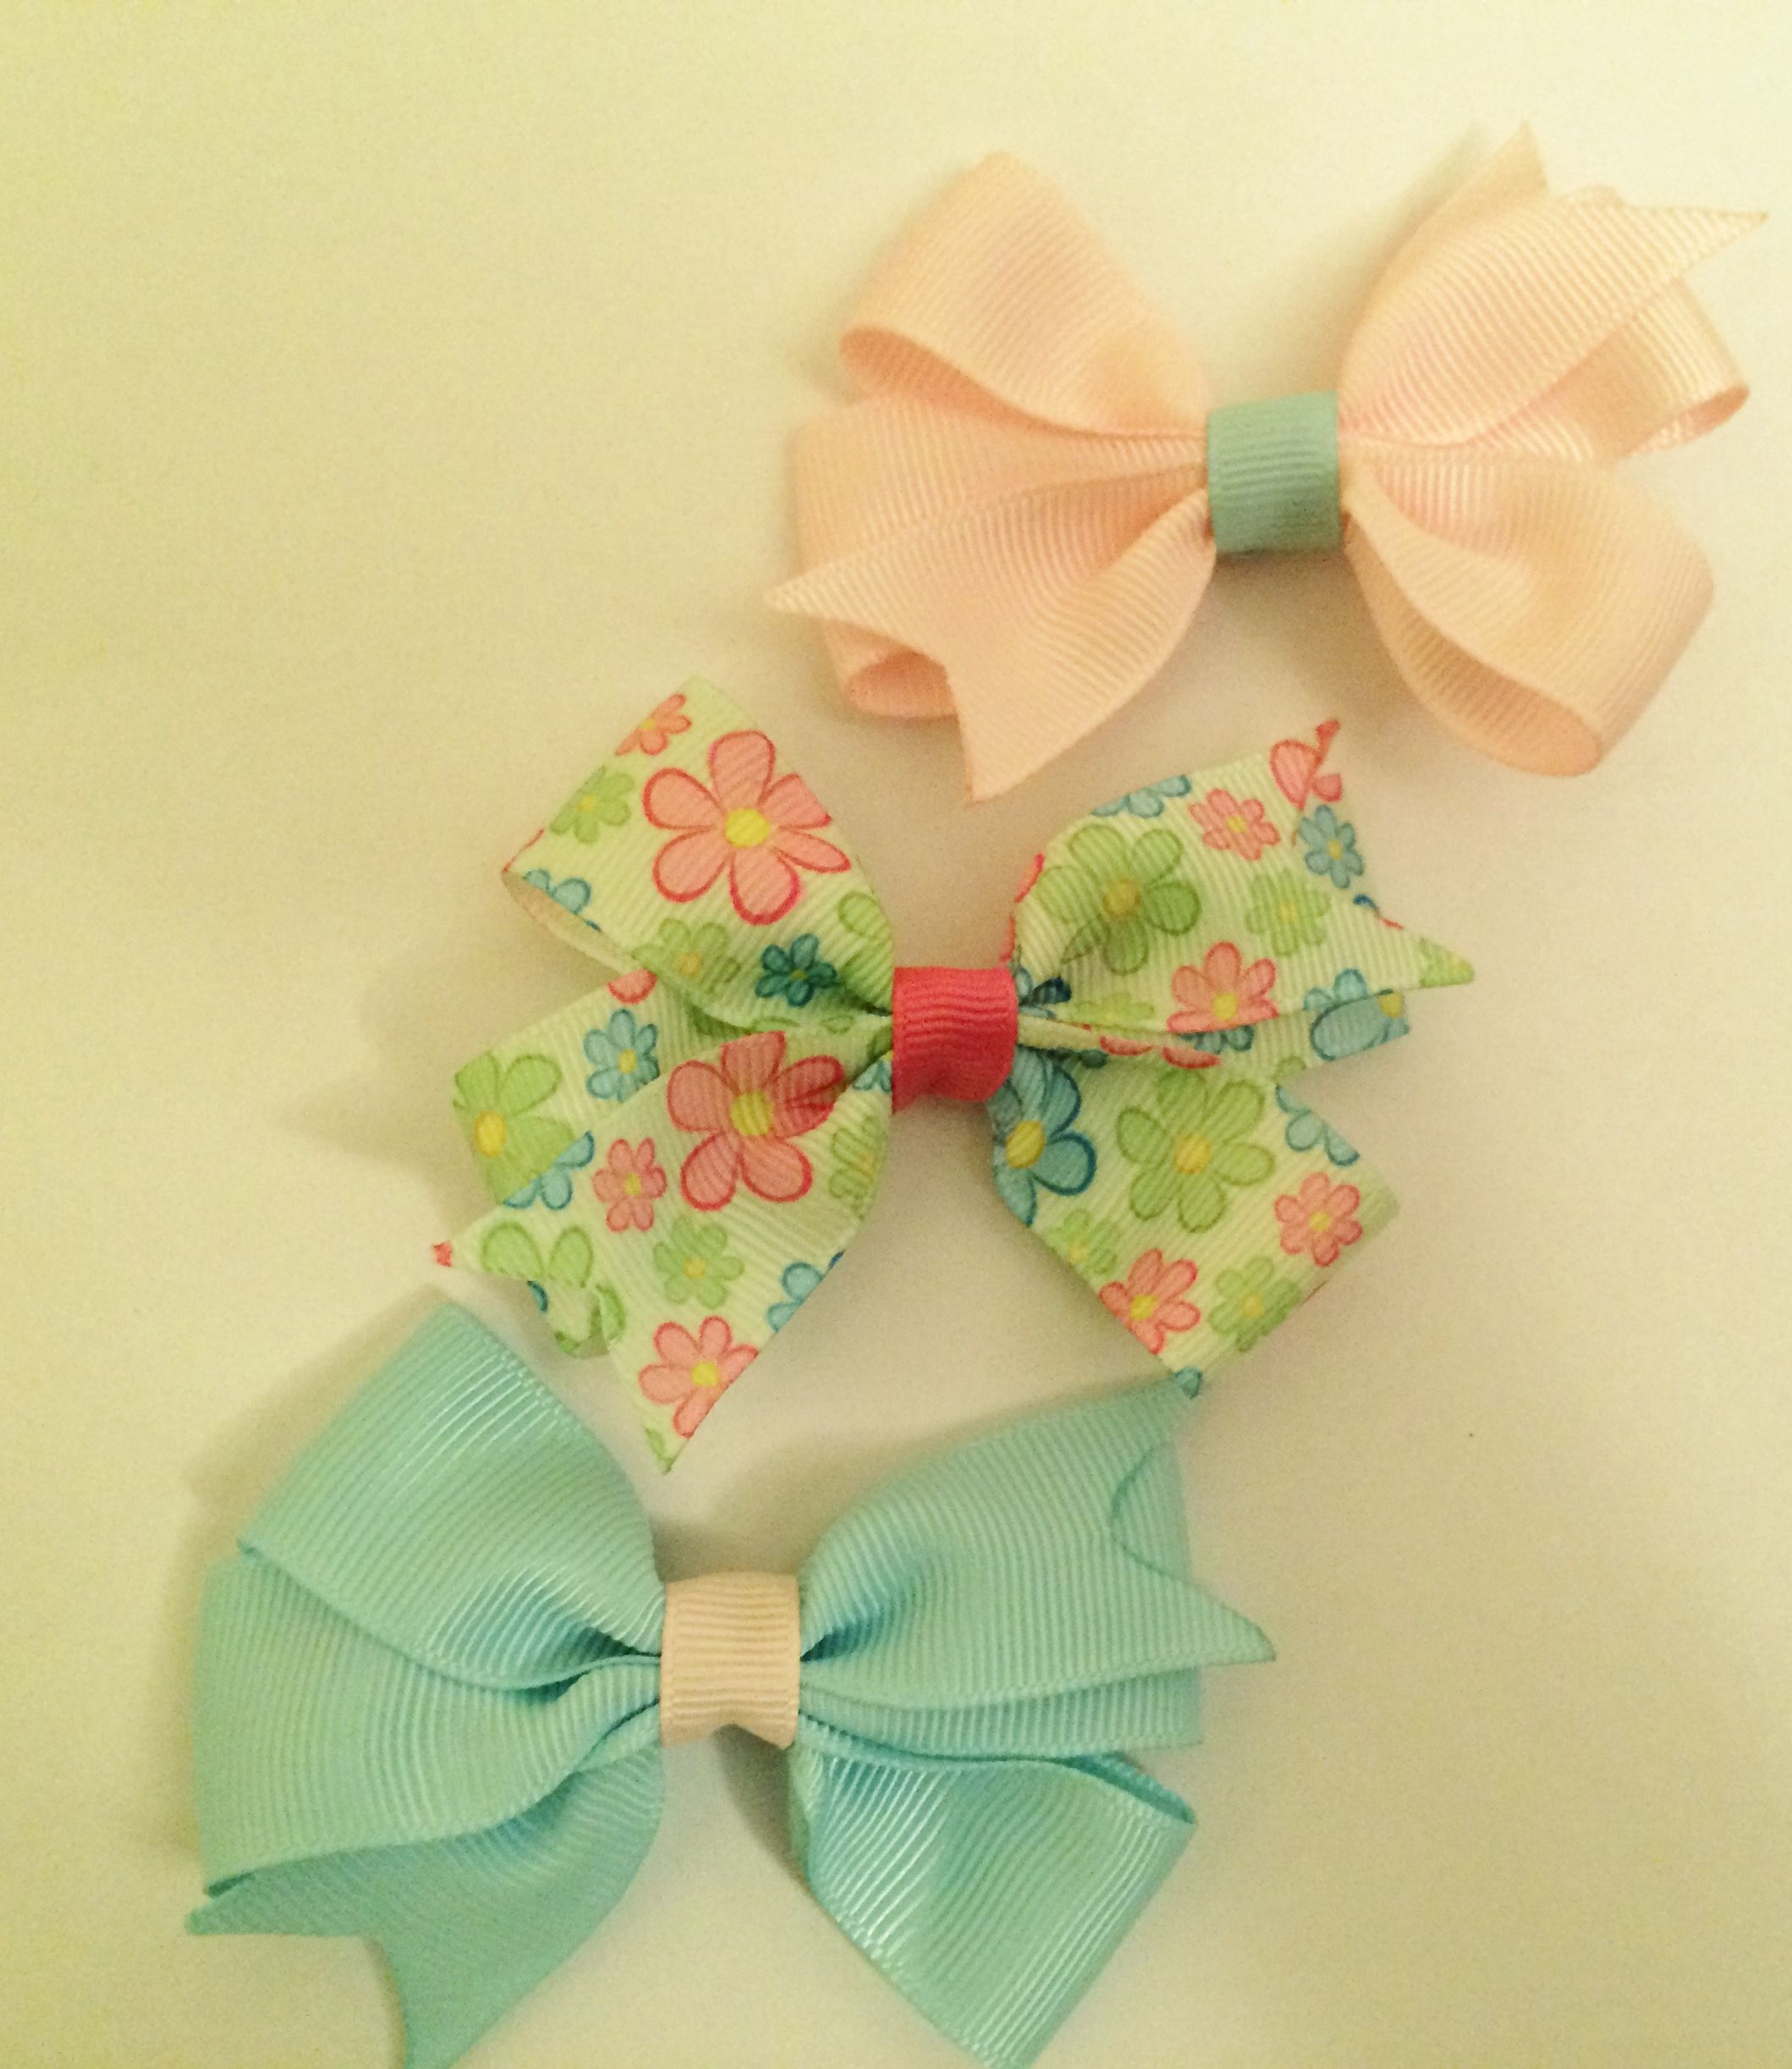 Set of 3 spring time baby bows.https://www.etsy.com/listing/225378672/set-of-3-small-baby-spring-time-pastel?ref=shop_home_active_4